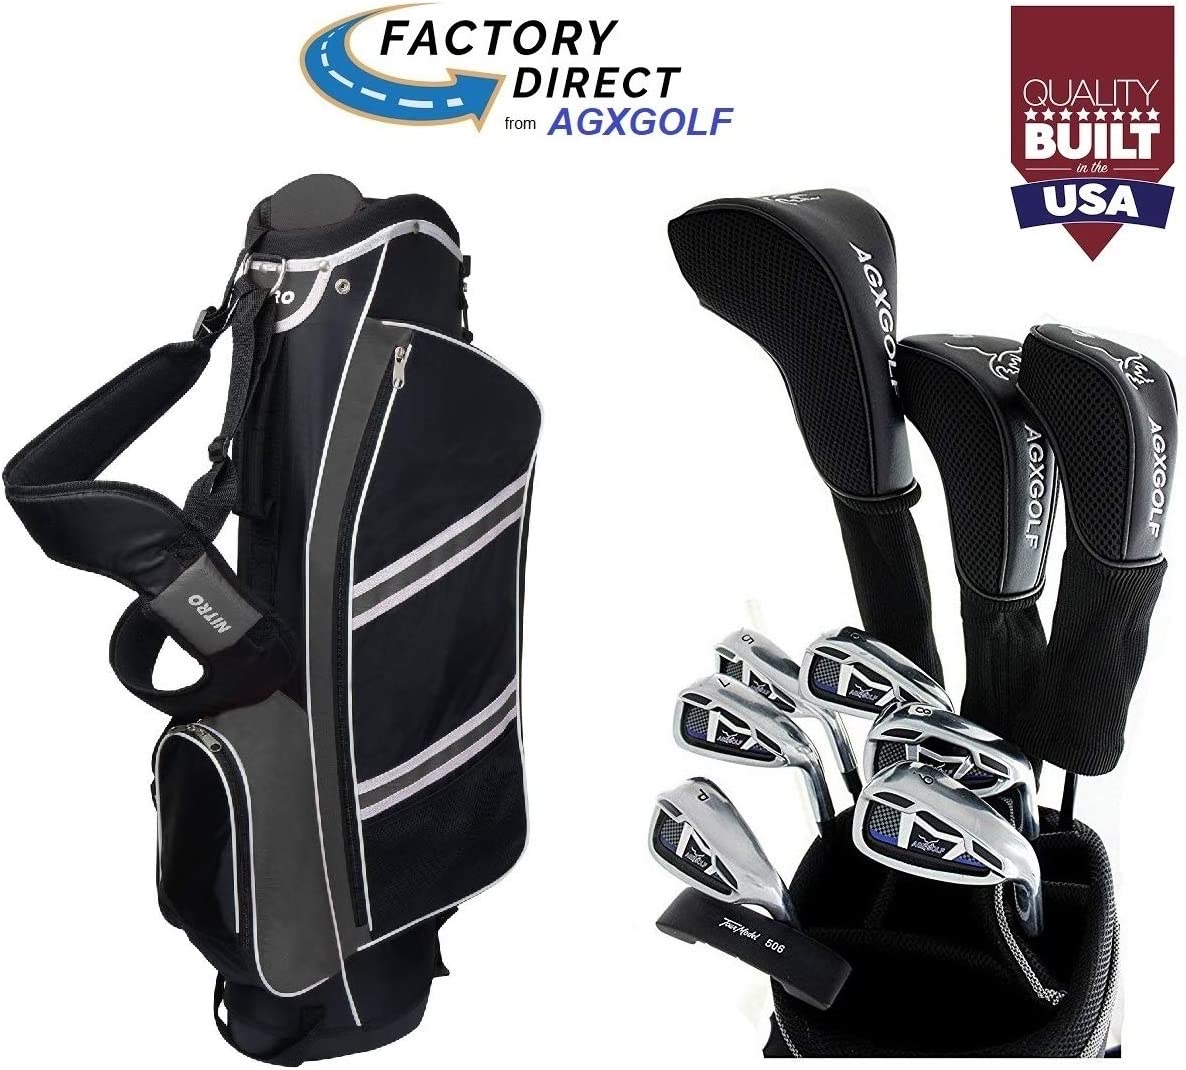 AGXGOLF Senior Men's Magnum Edition Complete Golf Club Set w Stand Bag, 460cc Driver, 3 Wood, Hybrid, 5-9 Irons, Wedge Right Hand Cadet, Regular or Tall Lengths Built in The USA